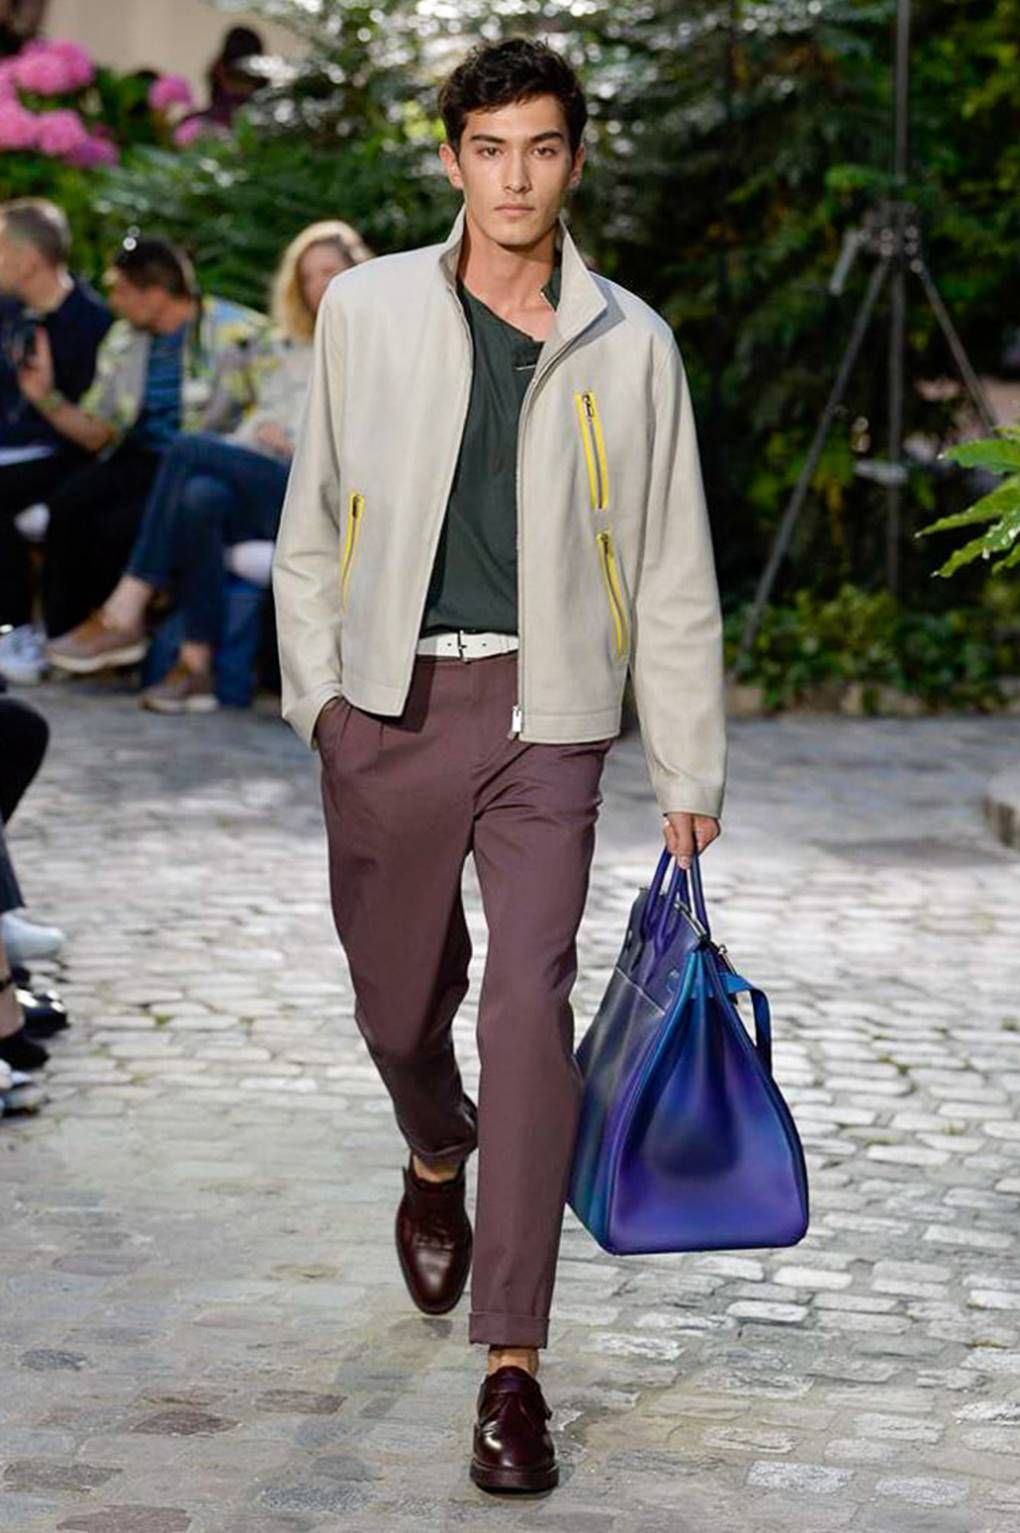 c5f07eb9ef10 Hermès captures the elegant spirit of leisure with its spring-summer 2019  collection. Véronique Nichanian prepares the label s man for warm summer  days in…